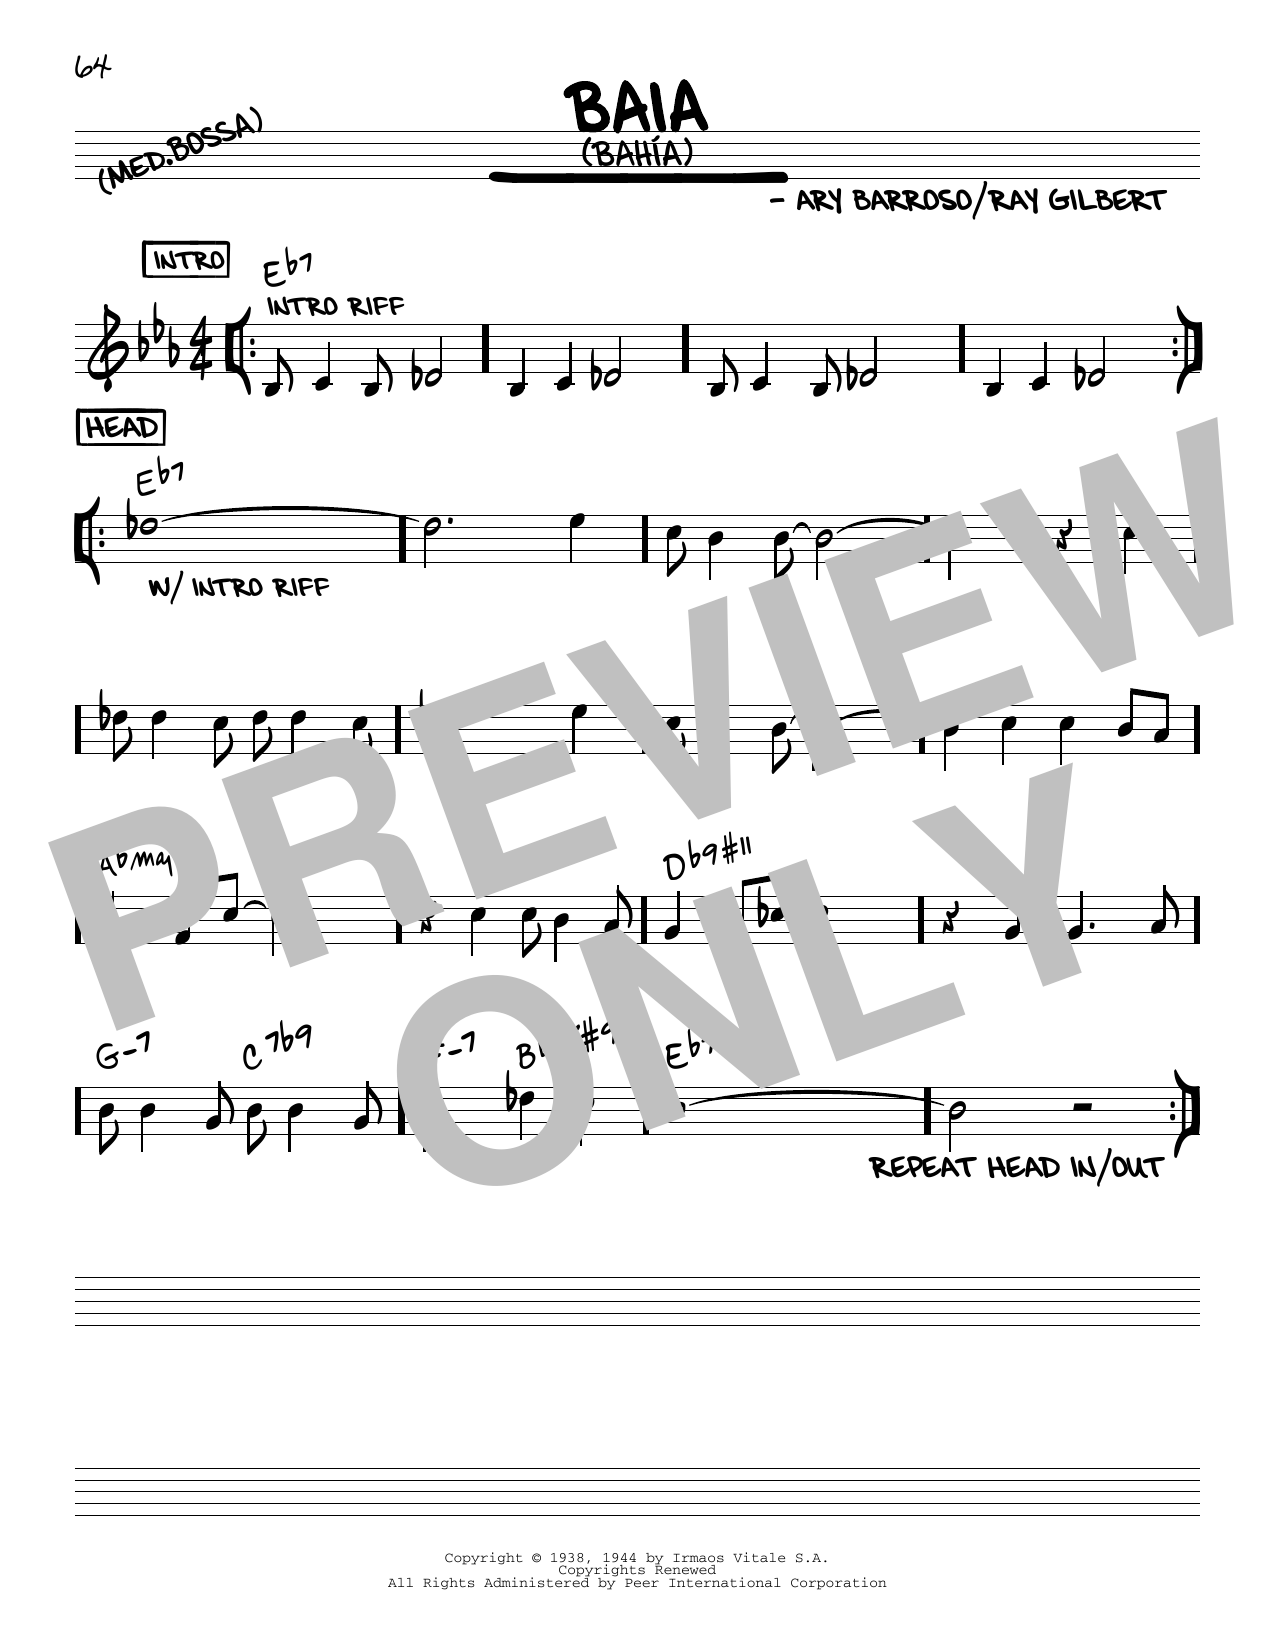 Baia (Bahia) Sheet Music